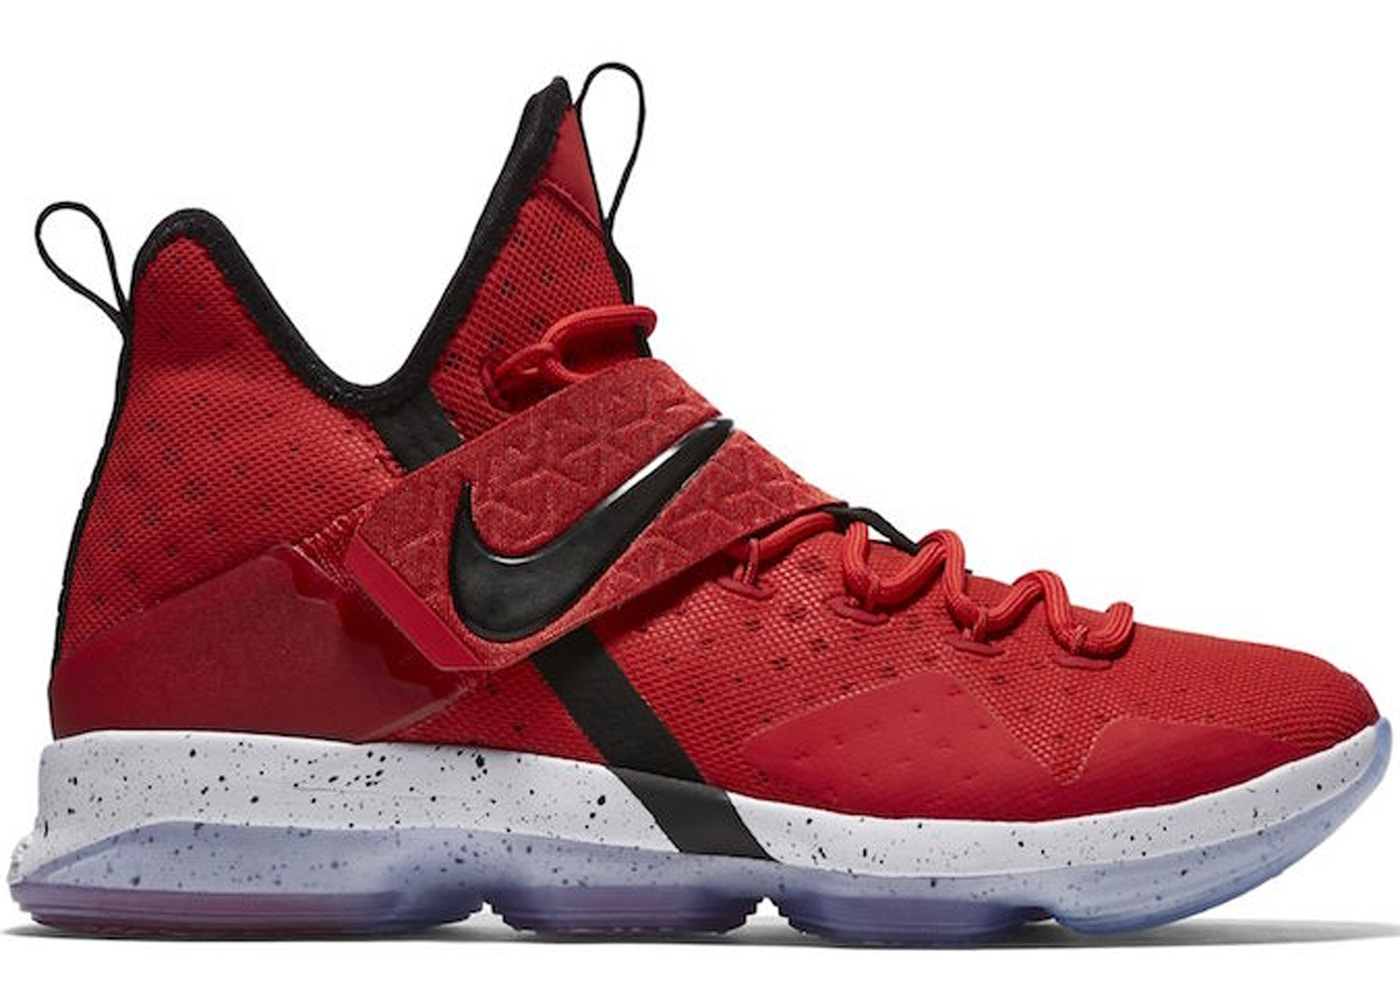 d9f5ebae149 LeBron 14 University Red - 852405-600